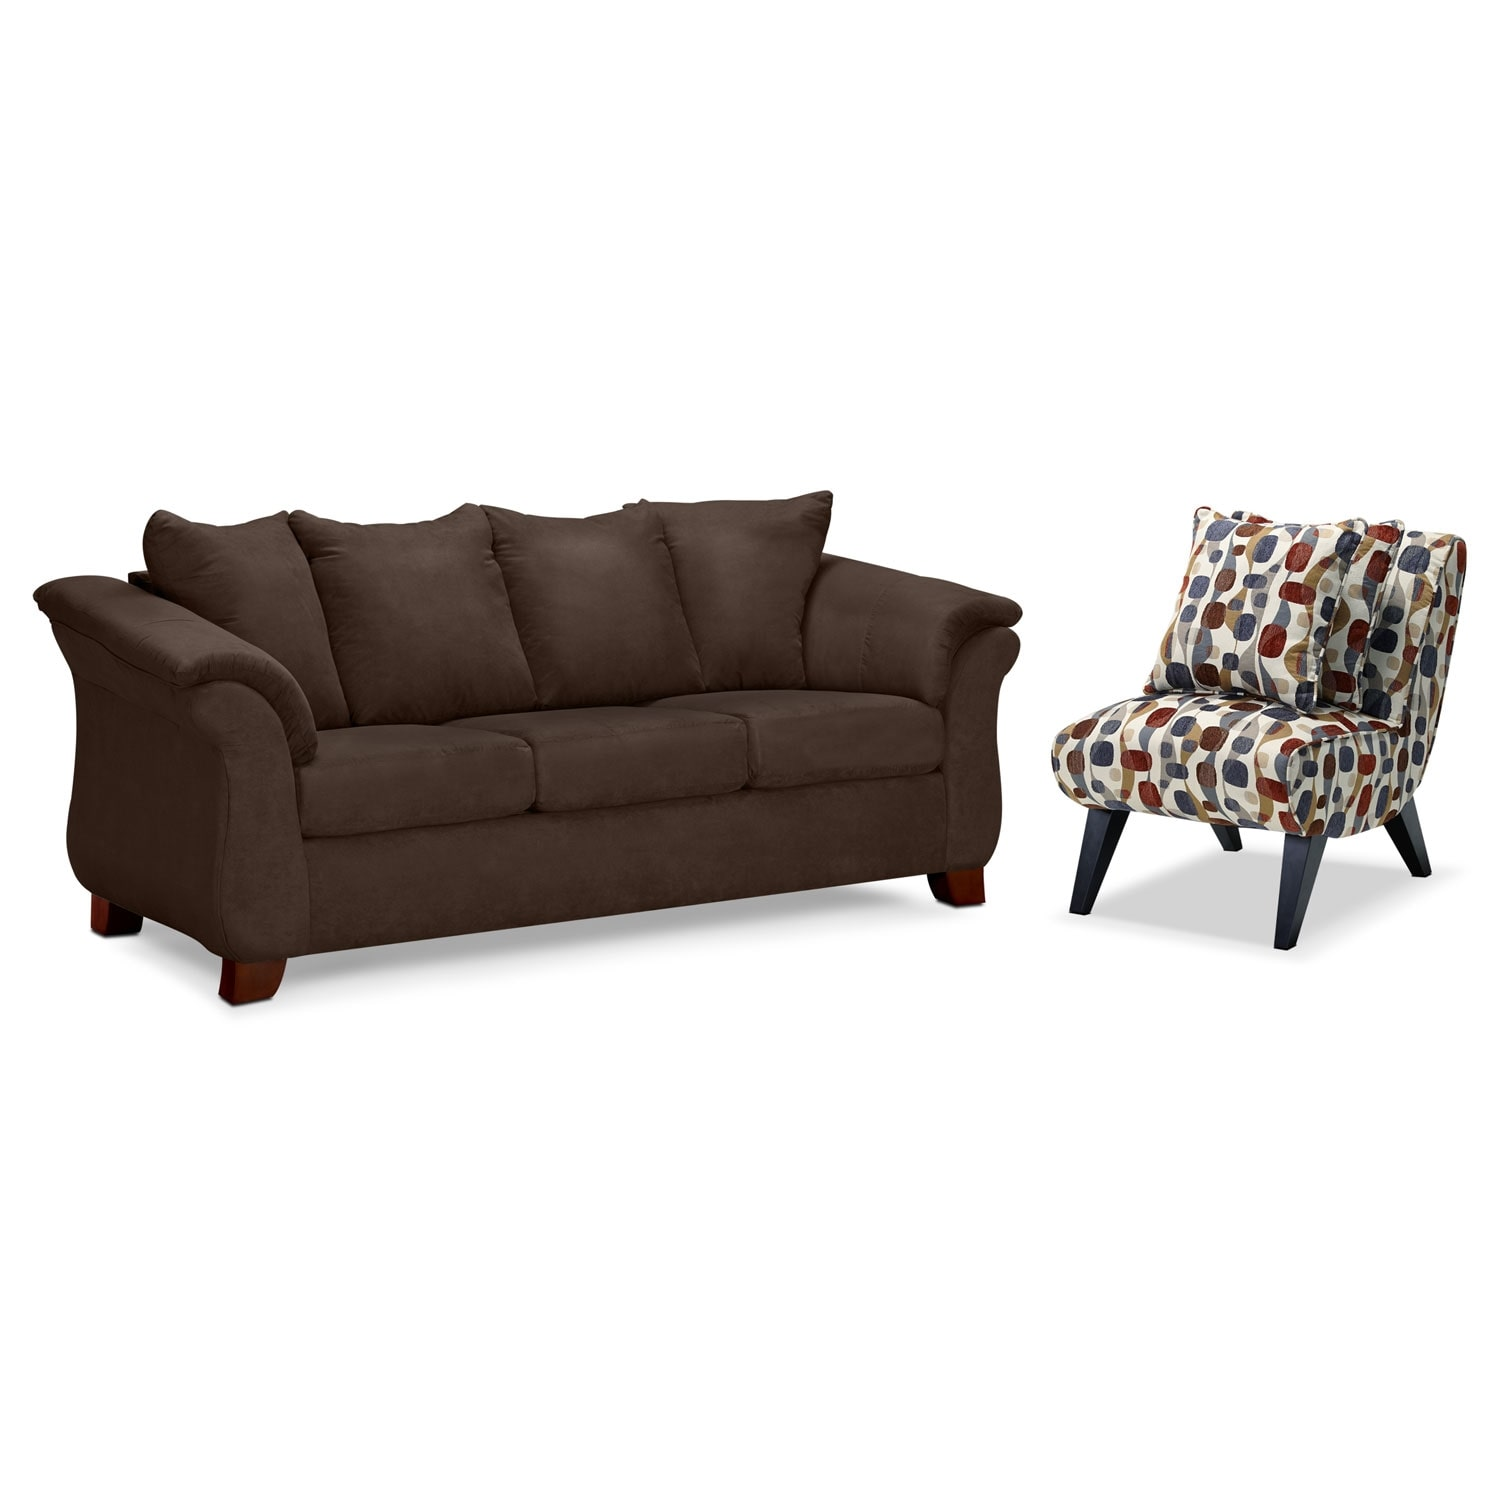 Living Room Furniture - Adrian Chocolate 2 Pc. Living Room w/ Accent Chair